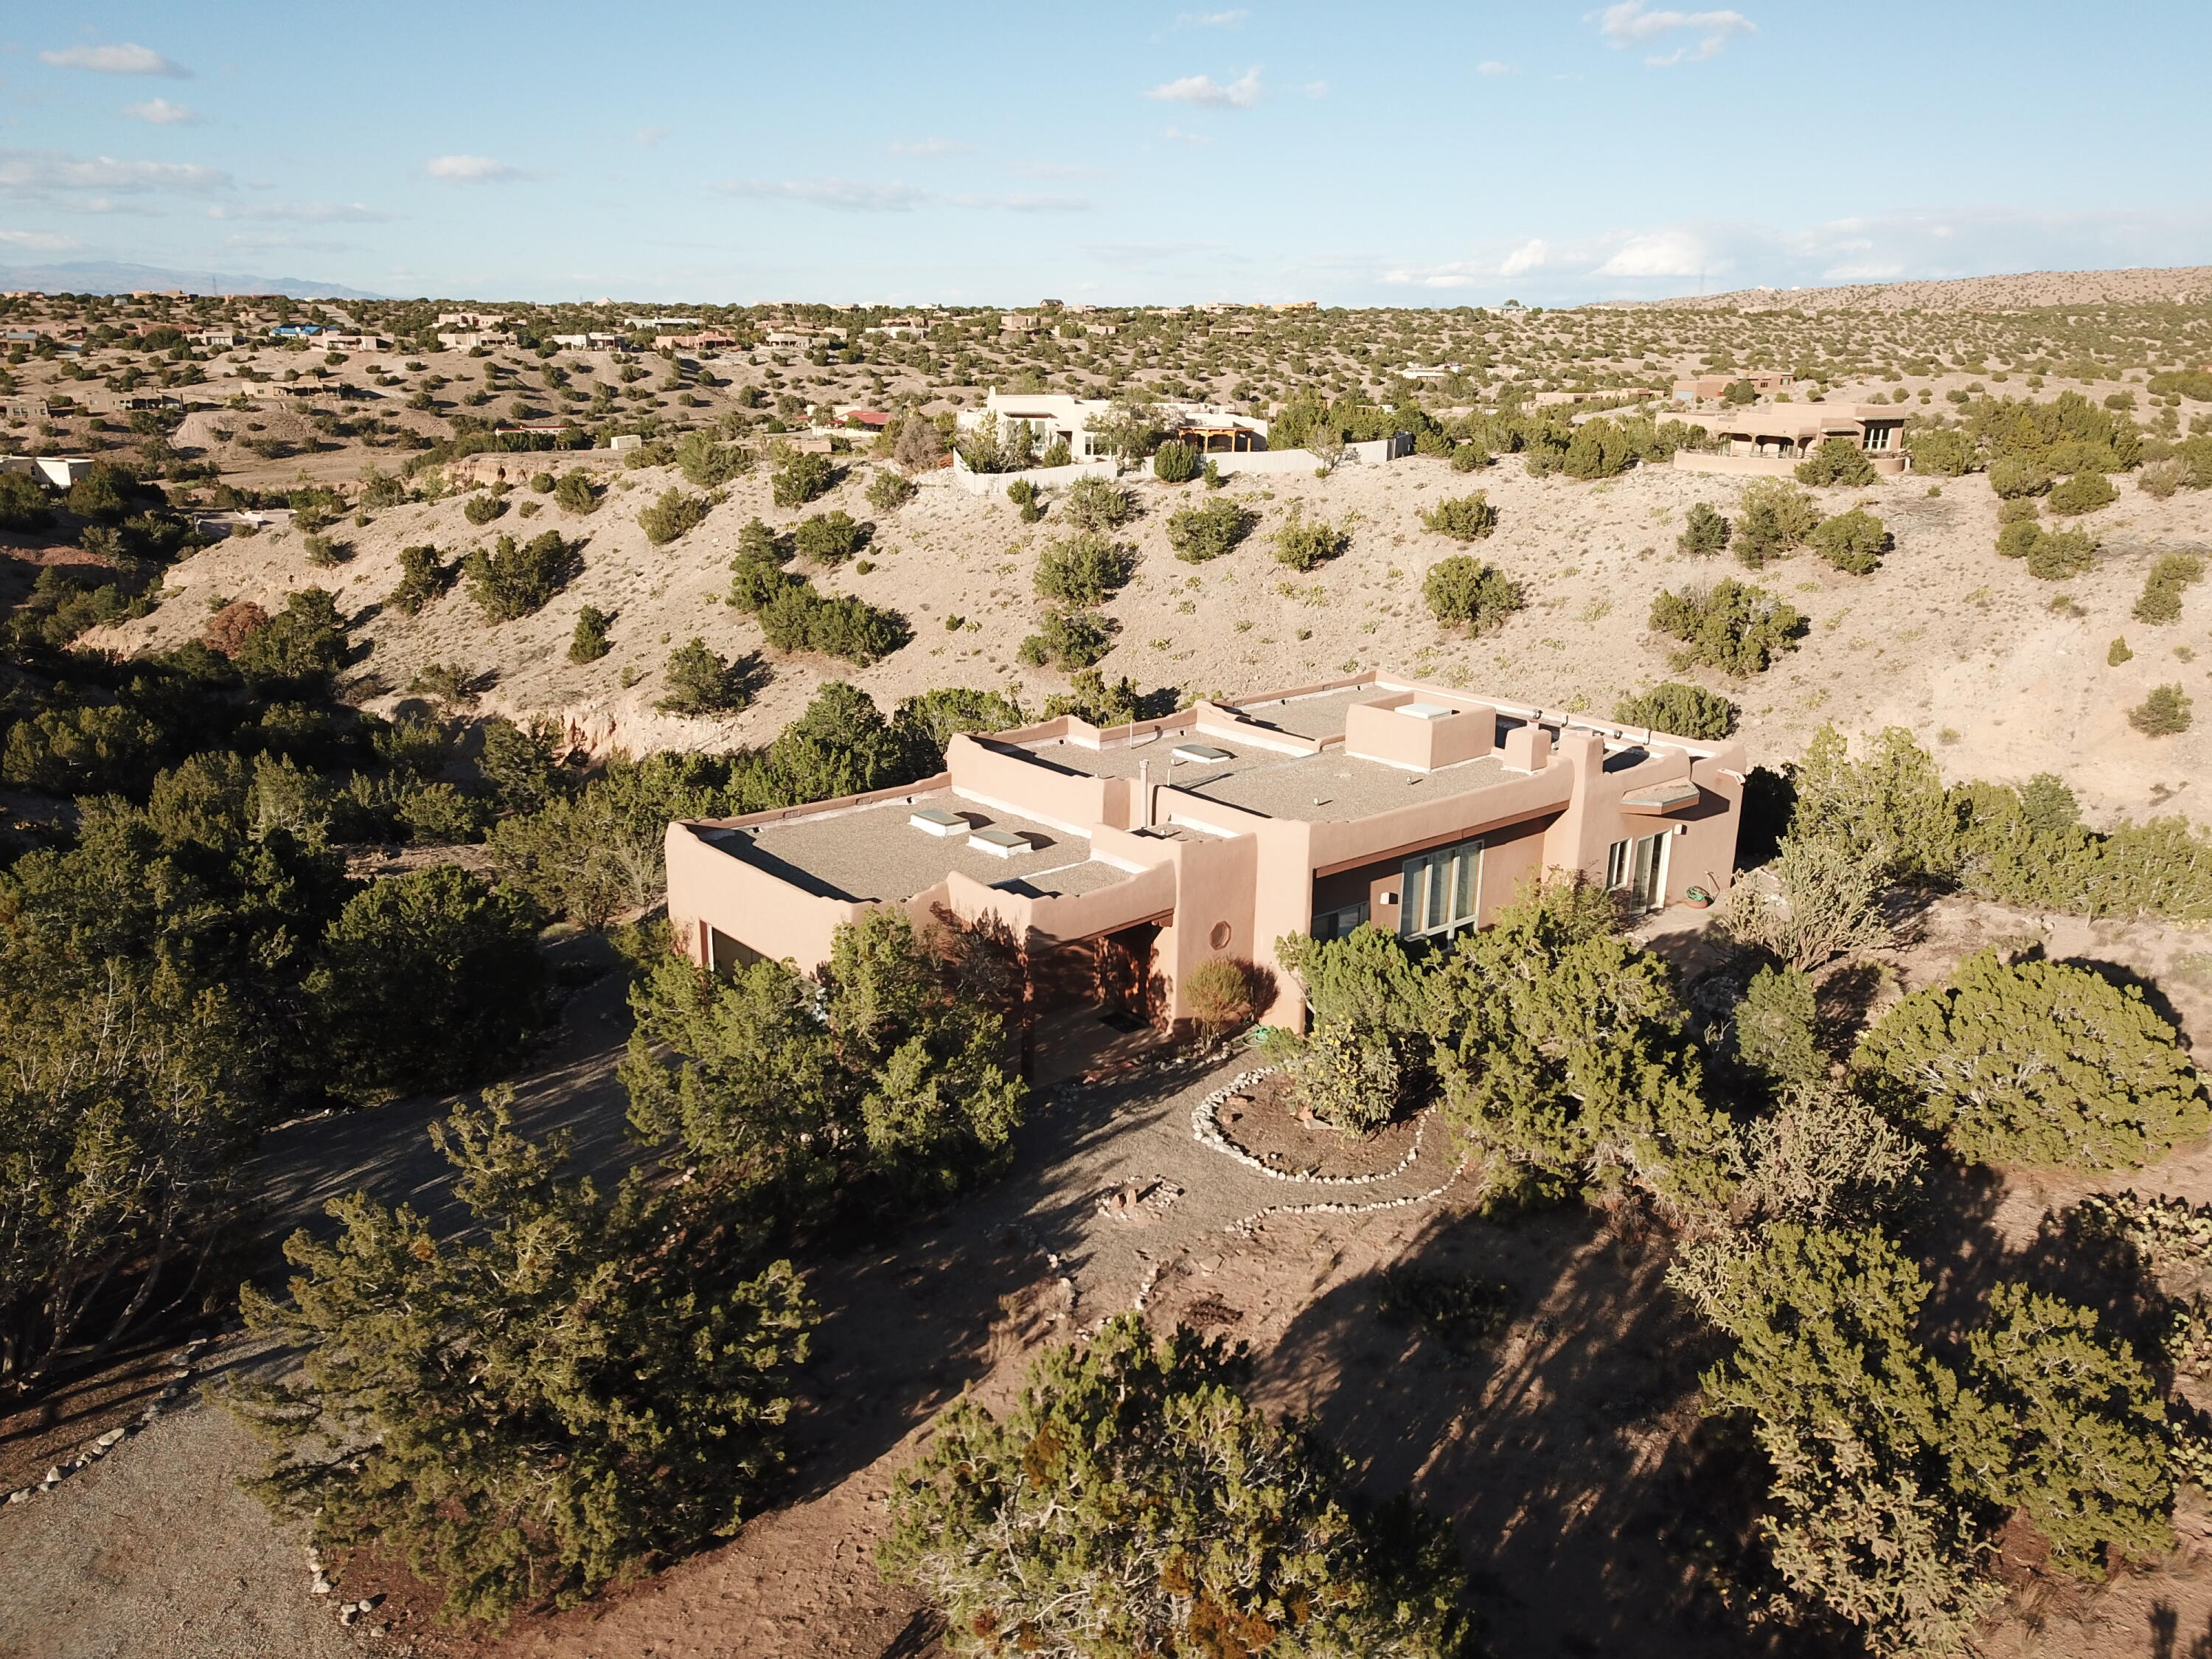 Charming southwest living in Placitas. This home has a private wooded lot.  Relax and enjoy the views from all over the property. Inside you'll find a large open floor plan that's ideal for entertaining. 14 foot exposed beam ceilings and two wood burning kiva fireplaces. Move-in Ready! Come see before it's gone.